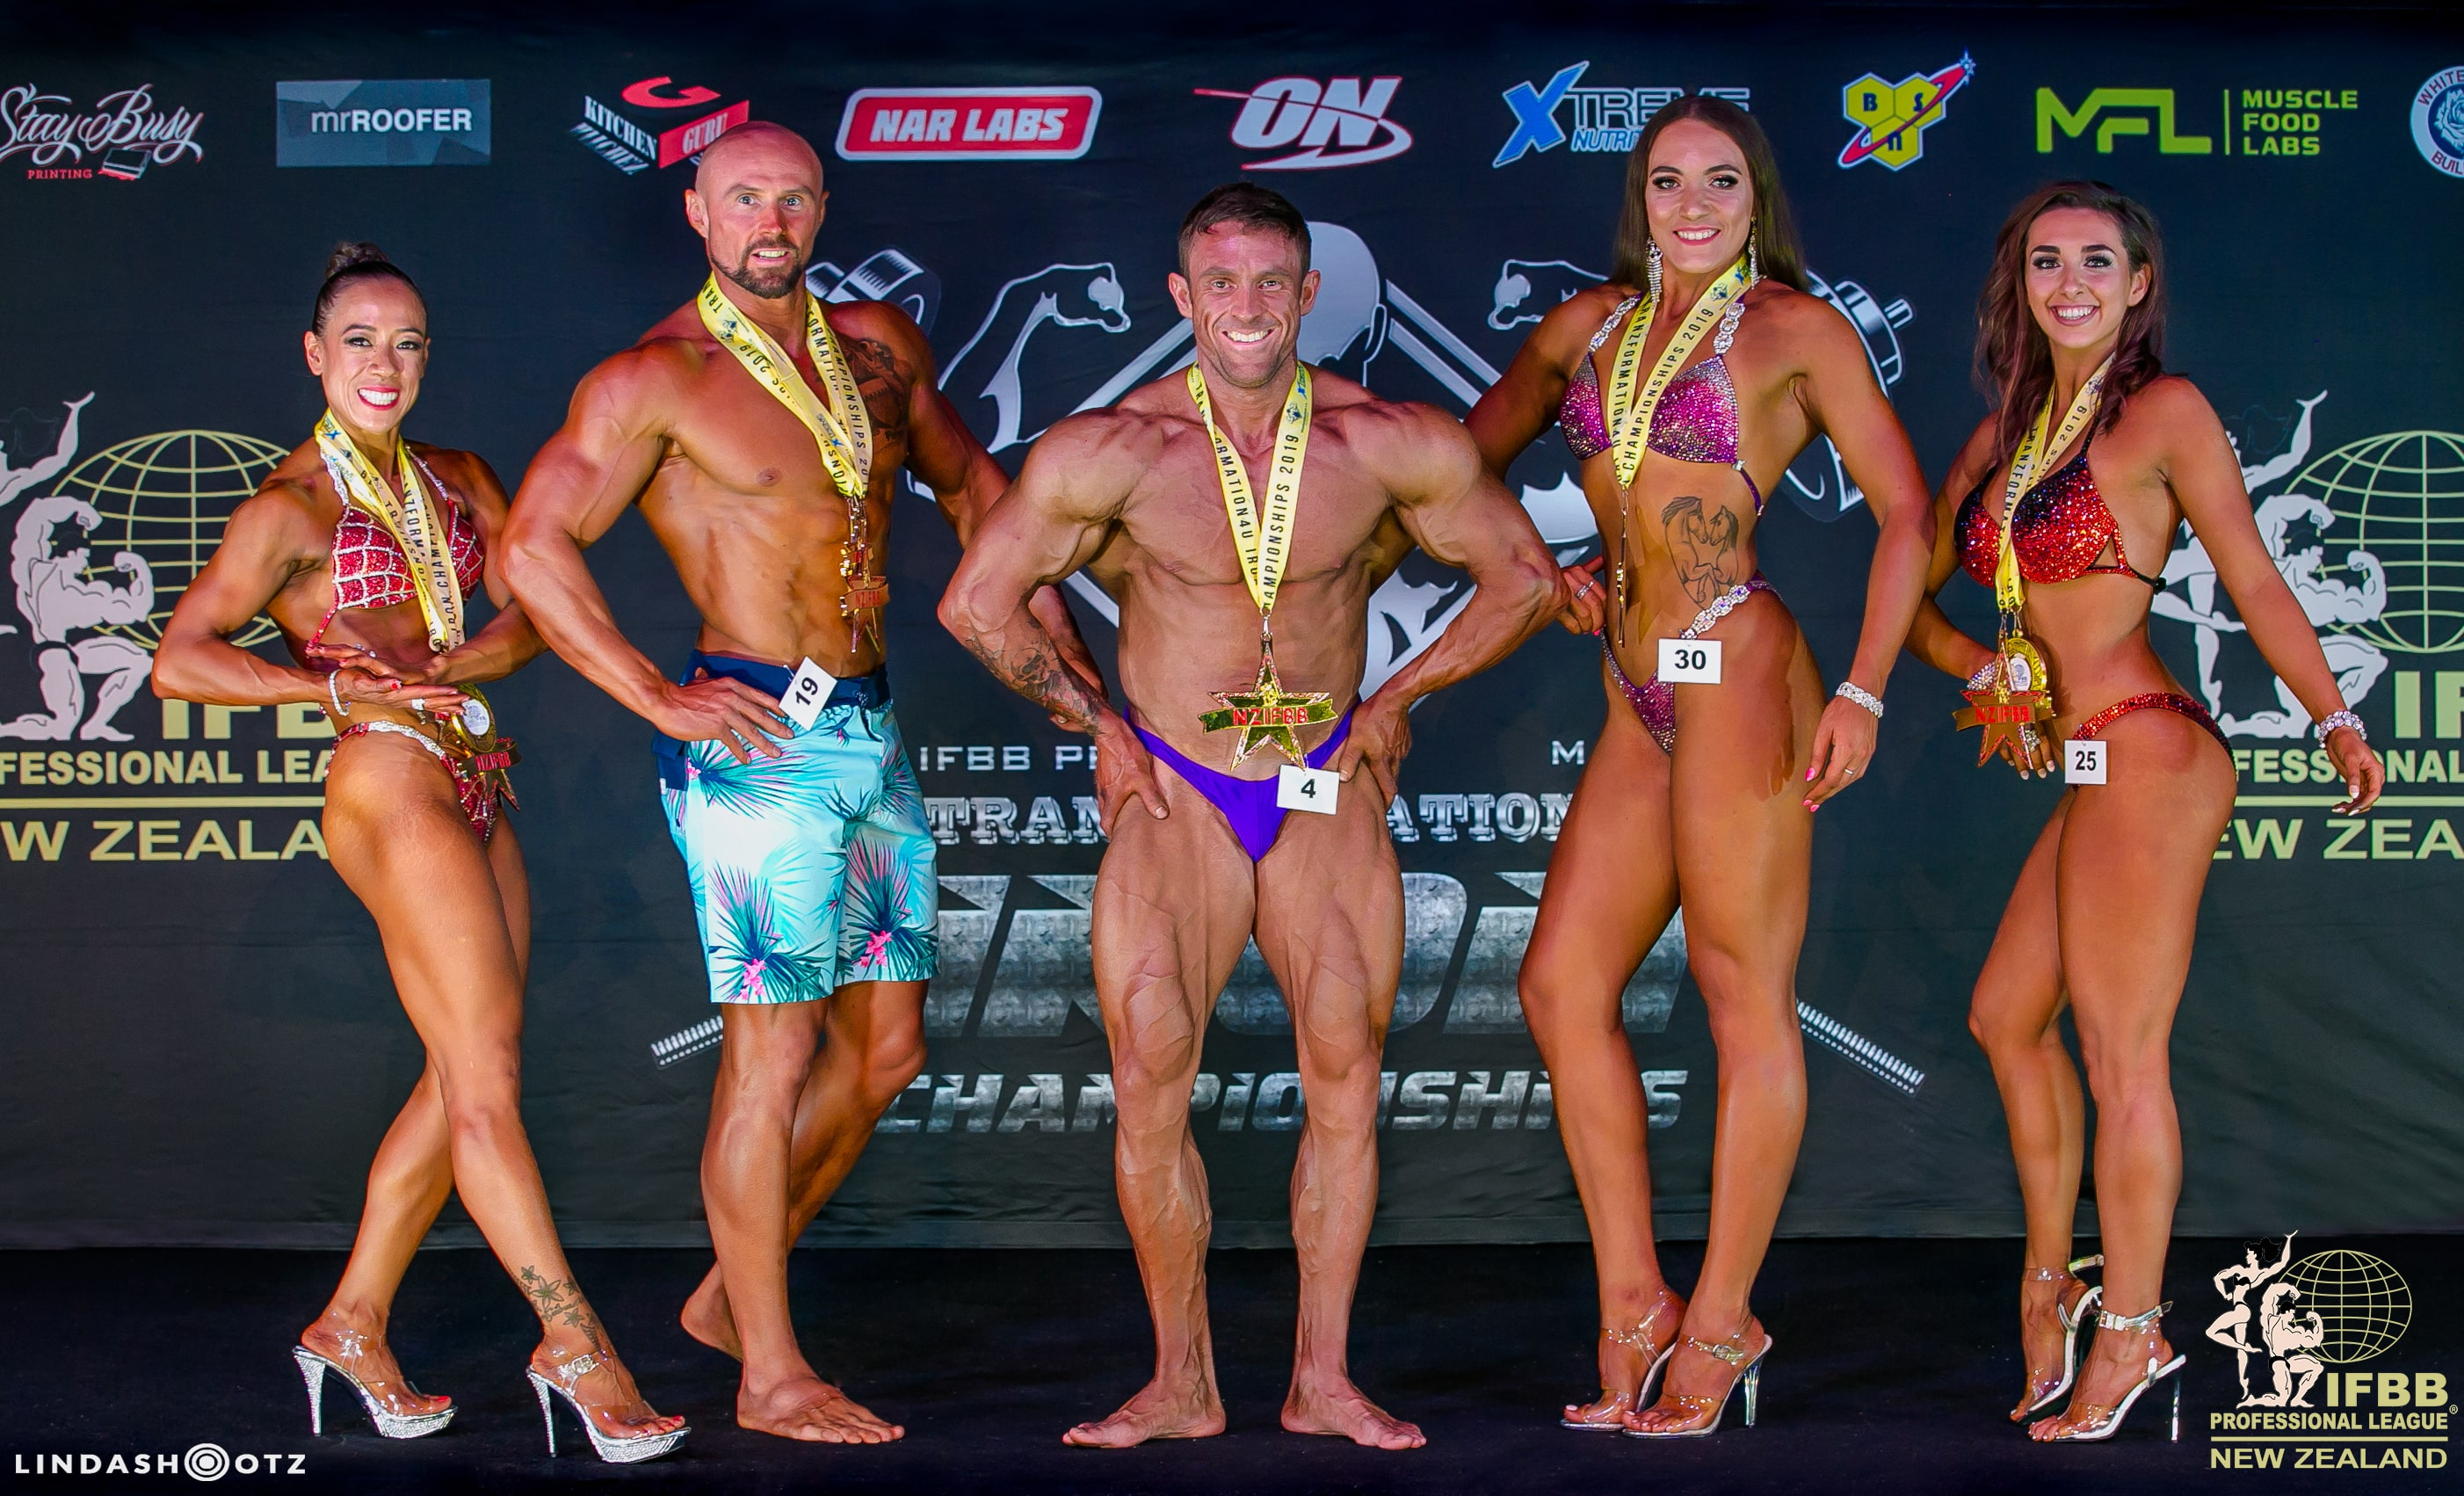 Tranzformation4u Iron Champs 2019 Results